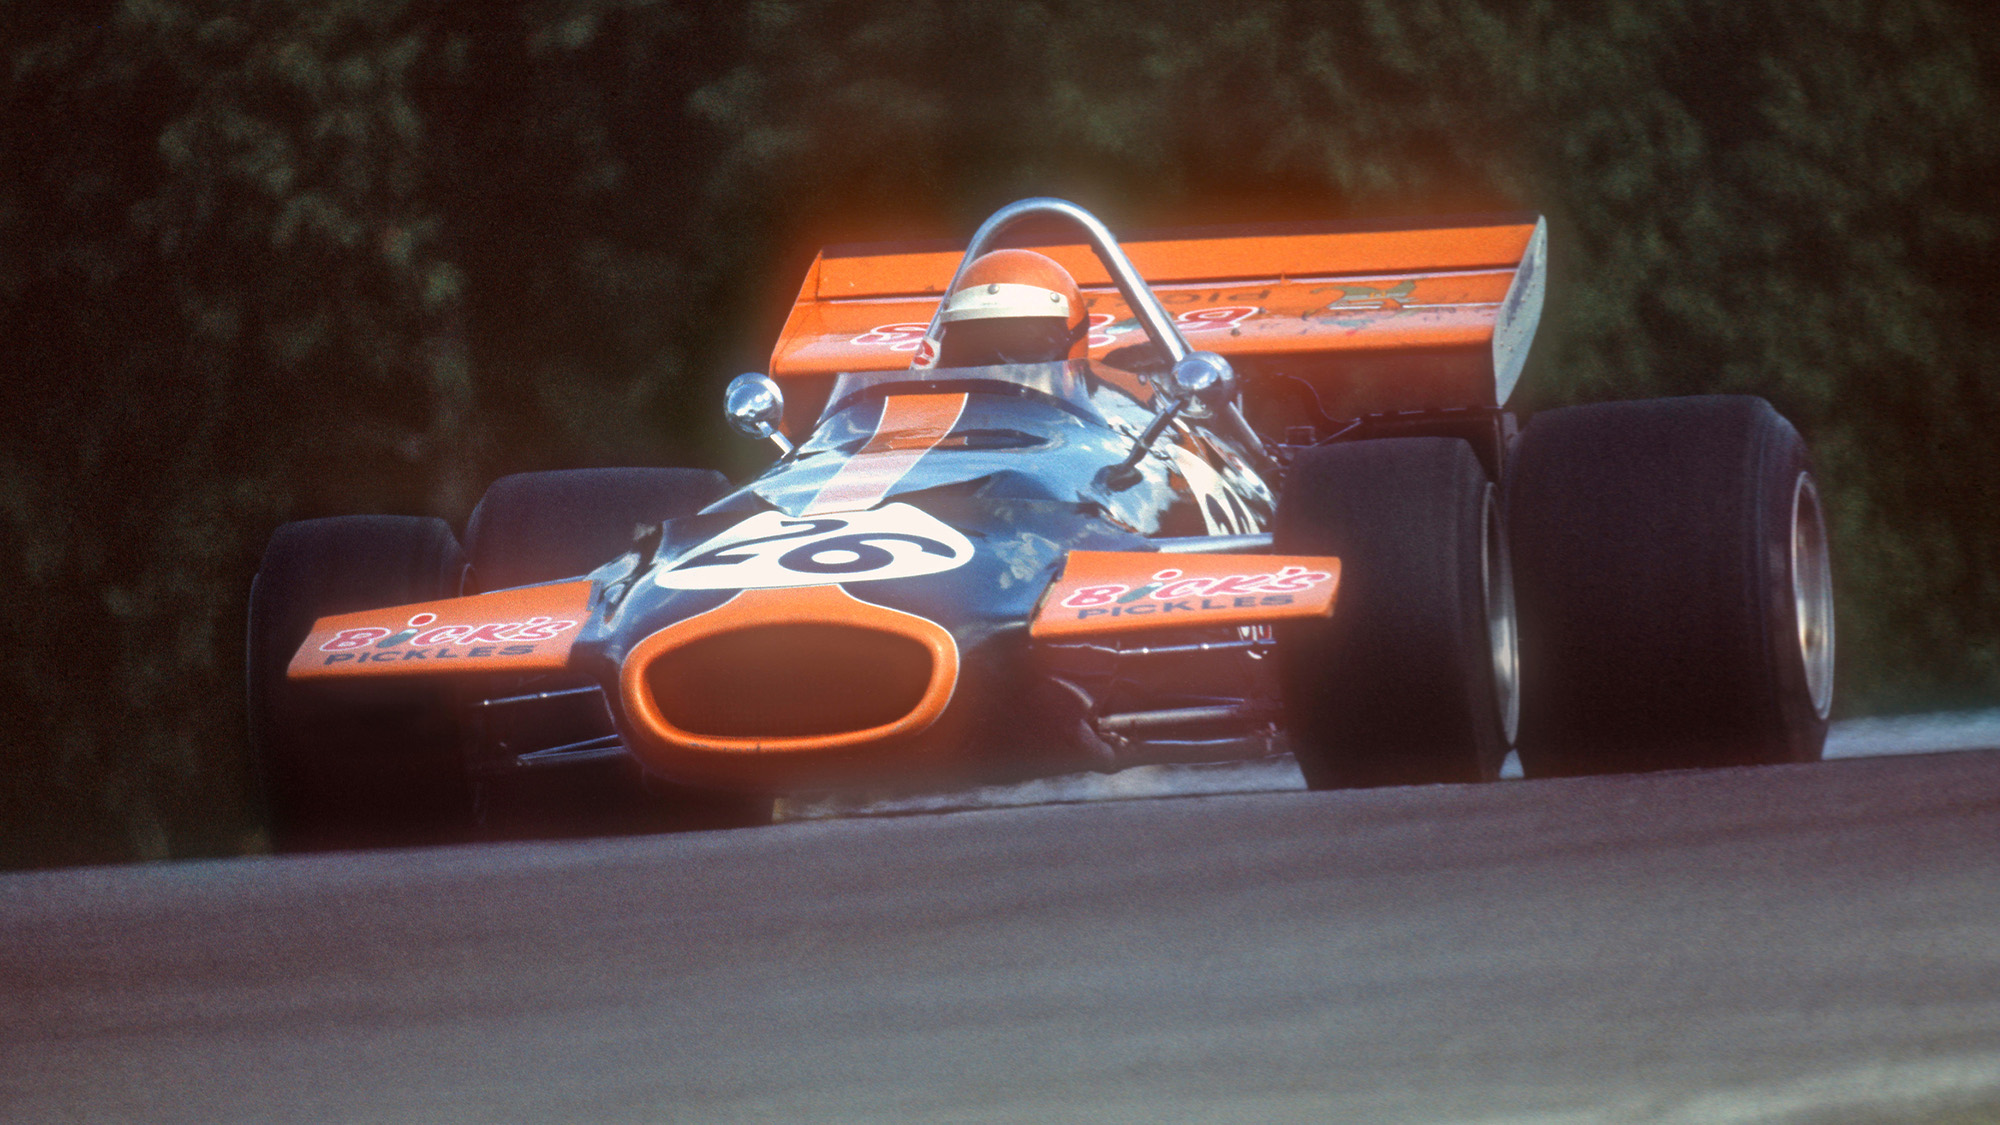 Chris Craft in practice for the 1971 Canadian Grand Prix